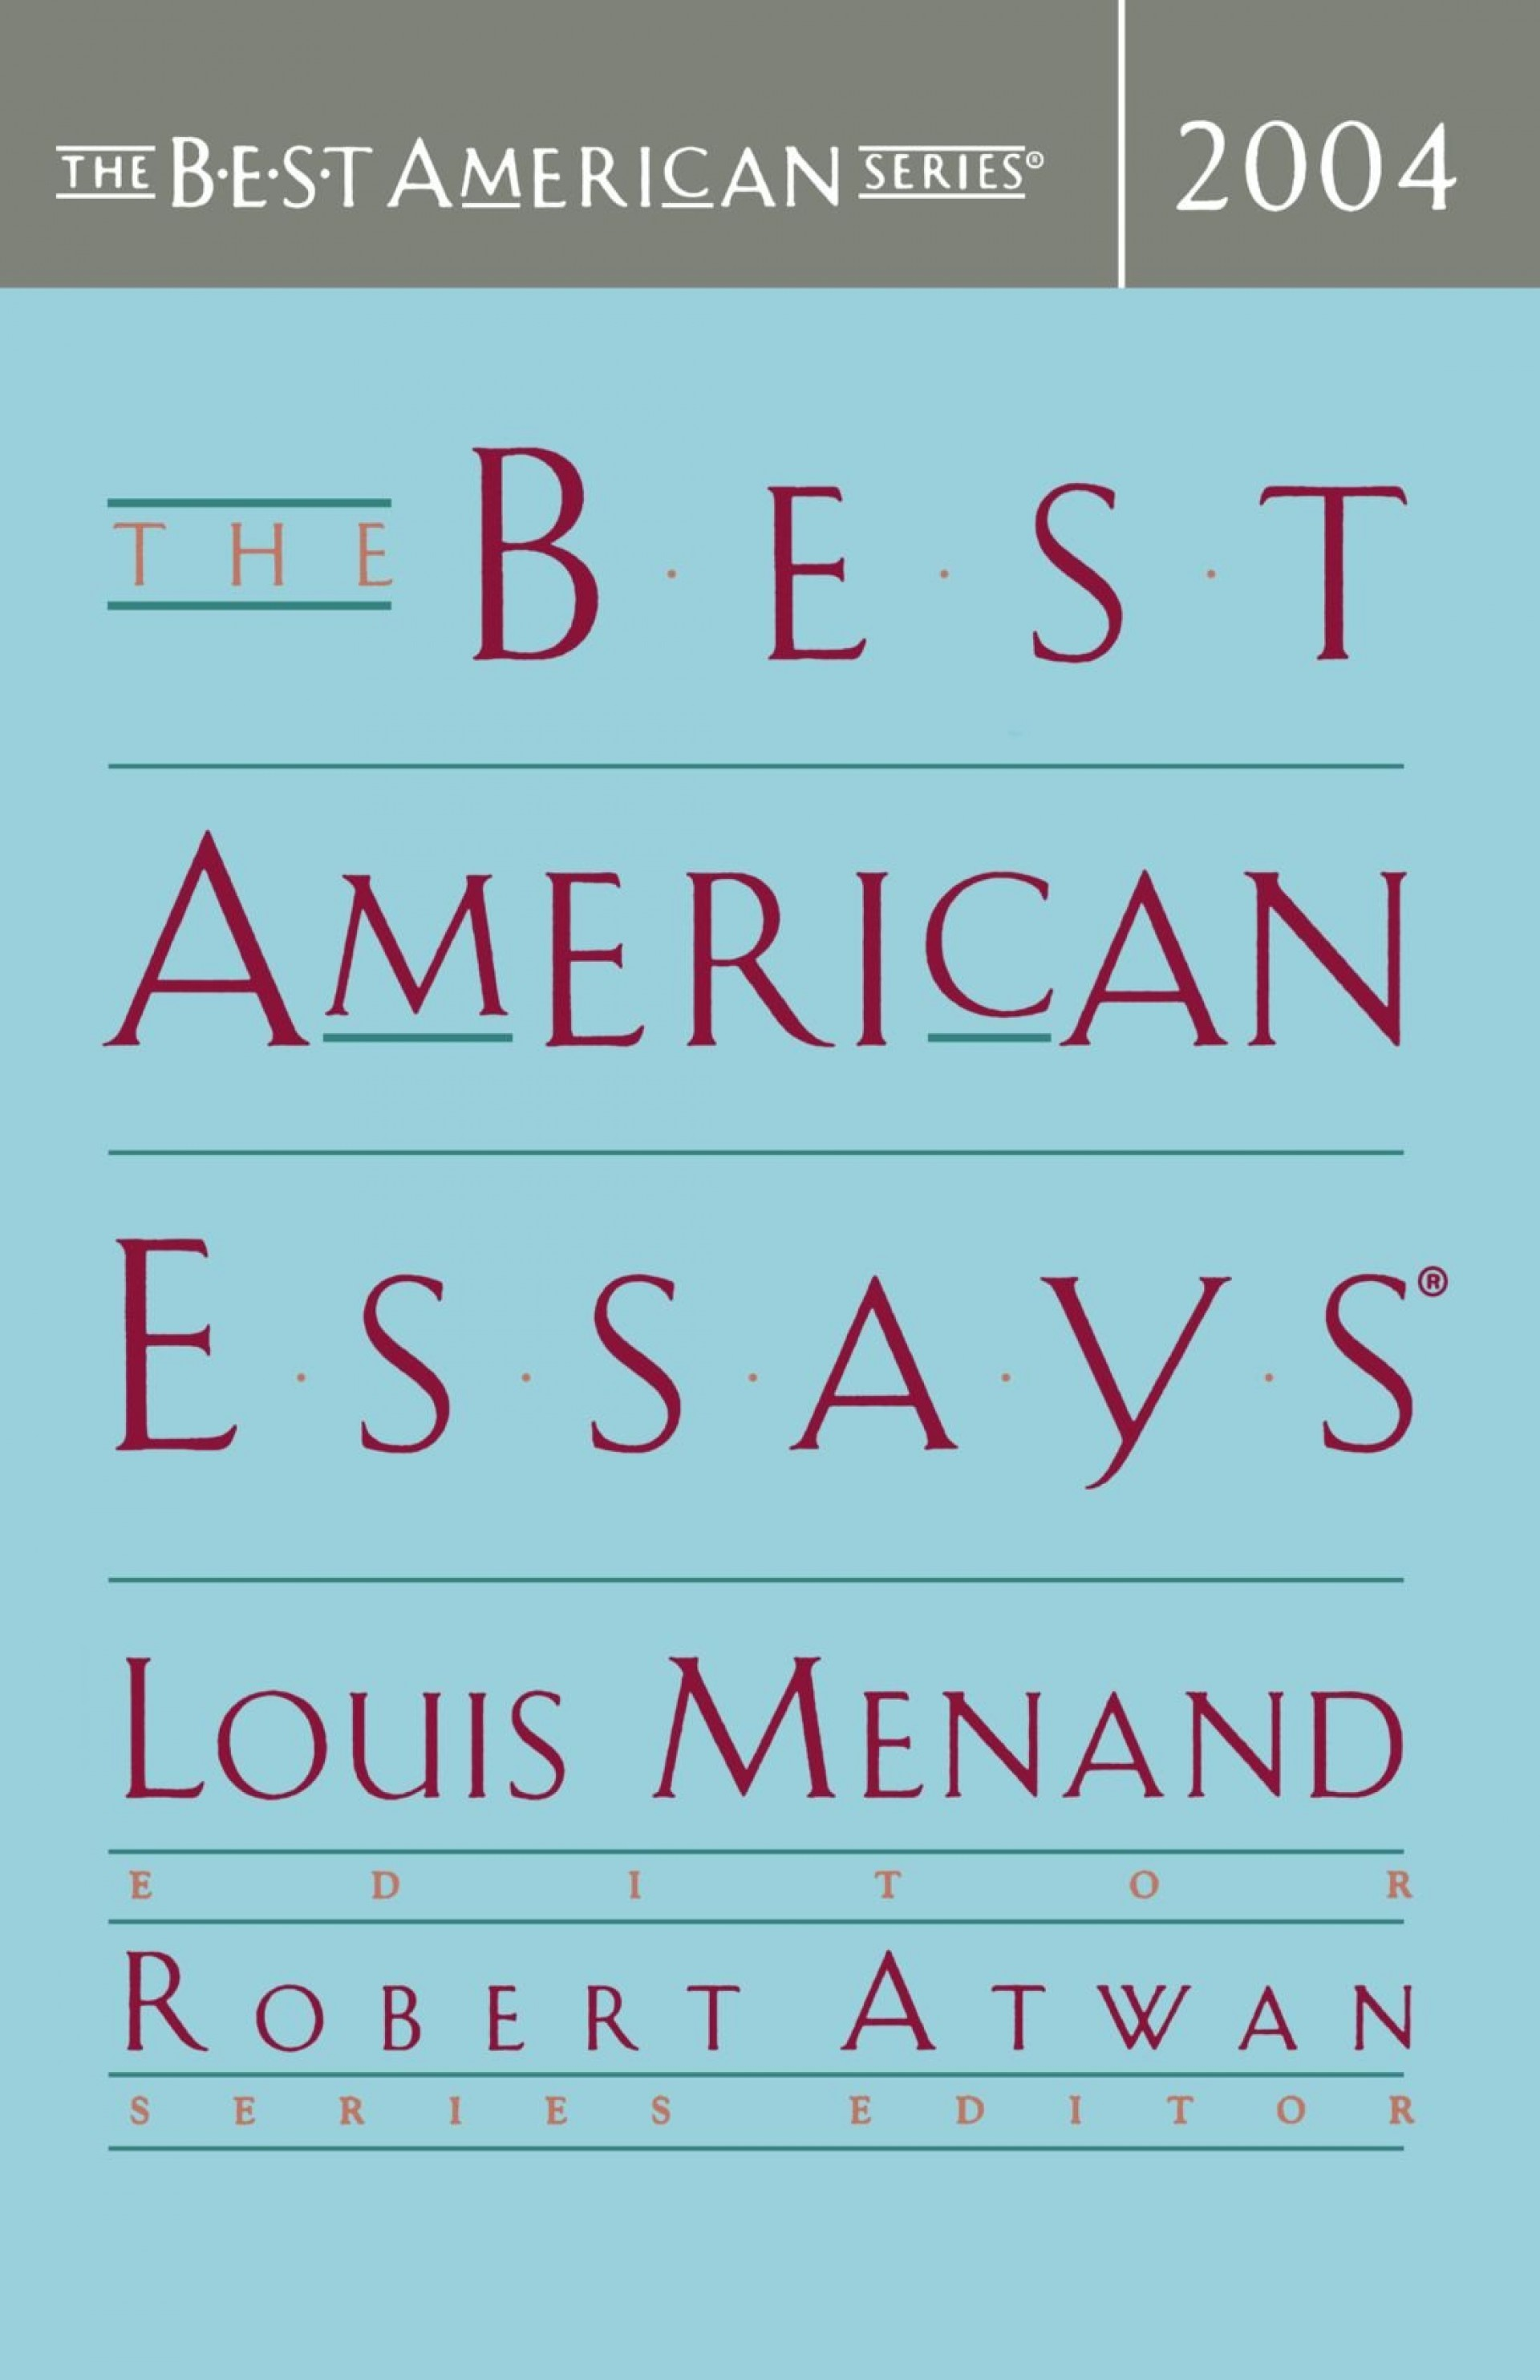 015 Essay Example The Best American Essays Wonderful 2018 Pdf 2017 Table Of Contents 2015 Free 1920